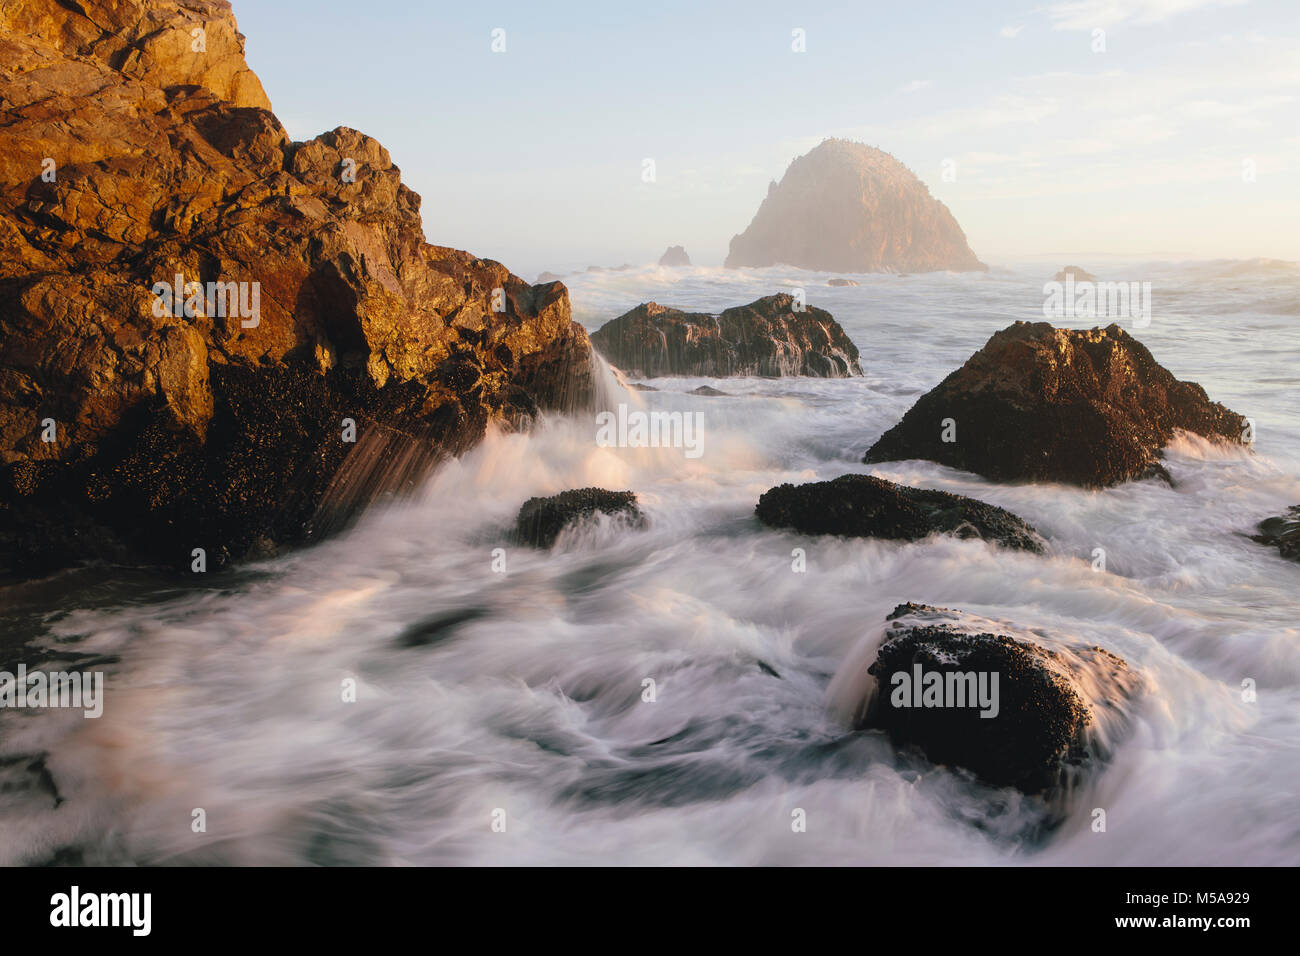 Seascape with breaking waves over rocks at dusk. - Stock Image